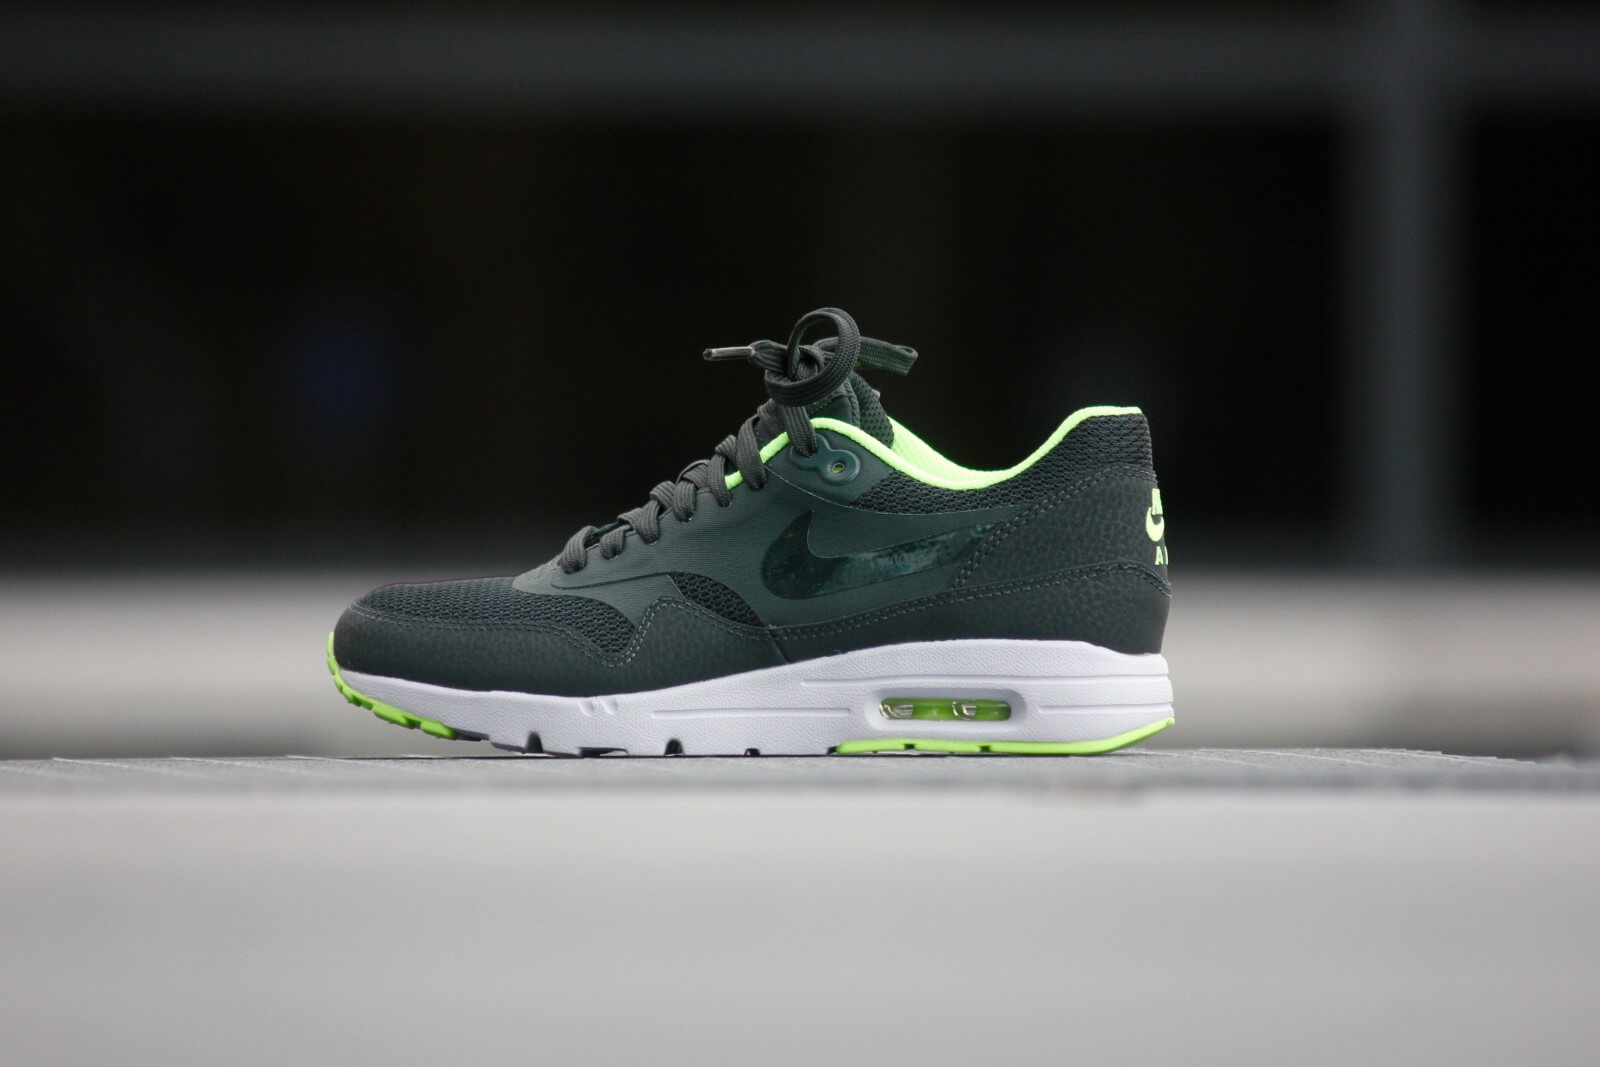 Nike Wmns Air Max 1 Ultra Essential Sea Weed 704993 301